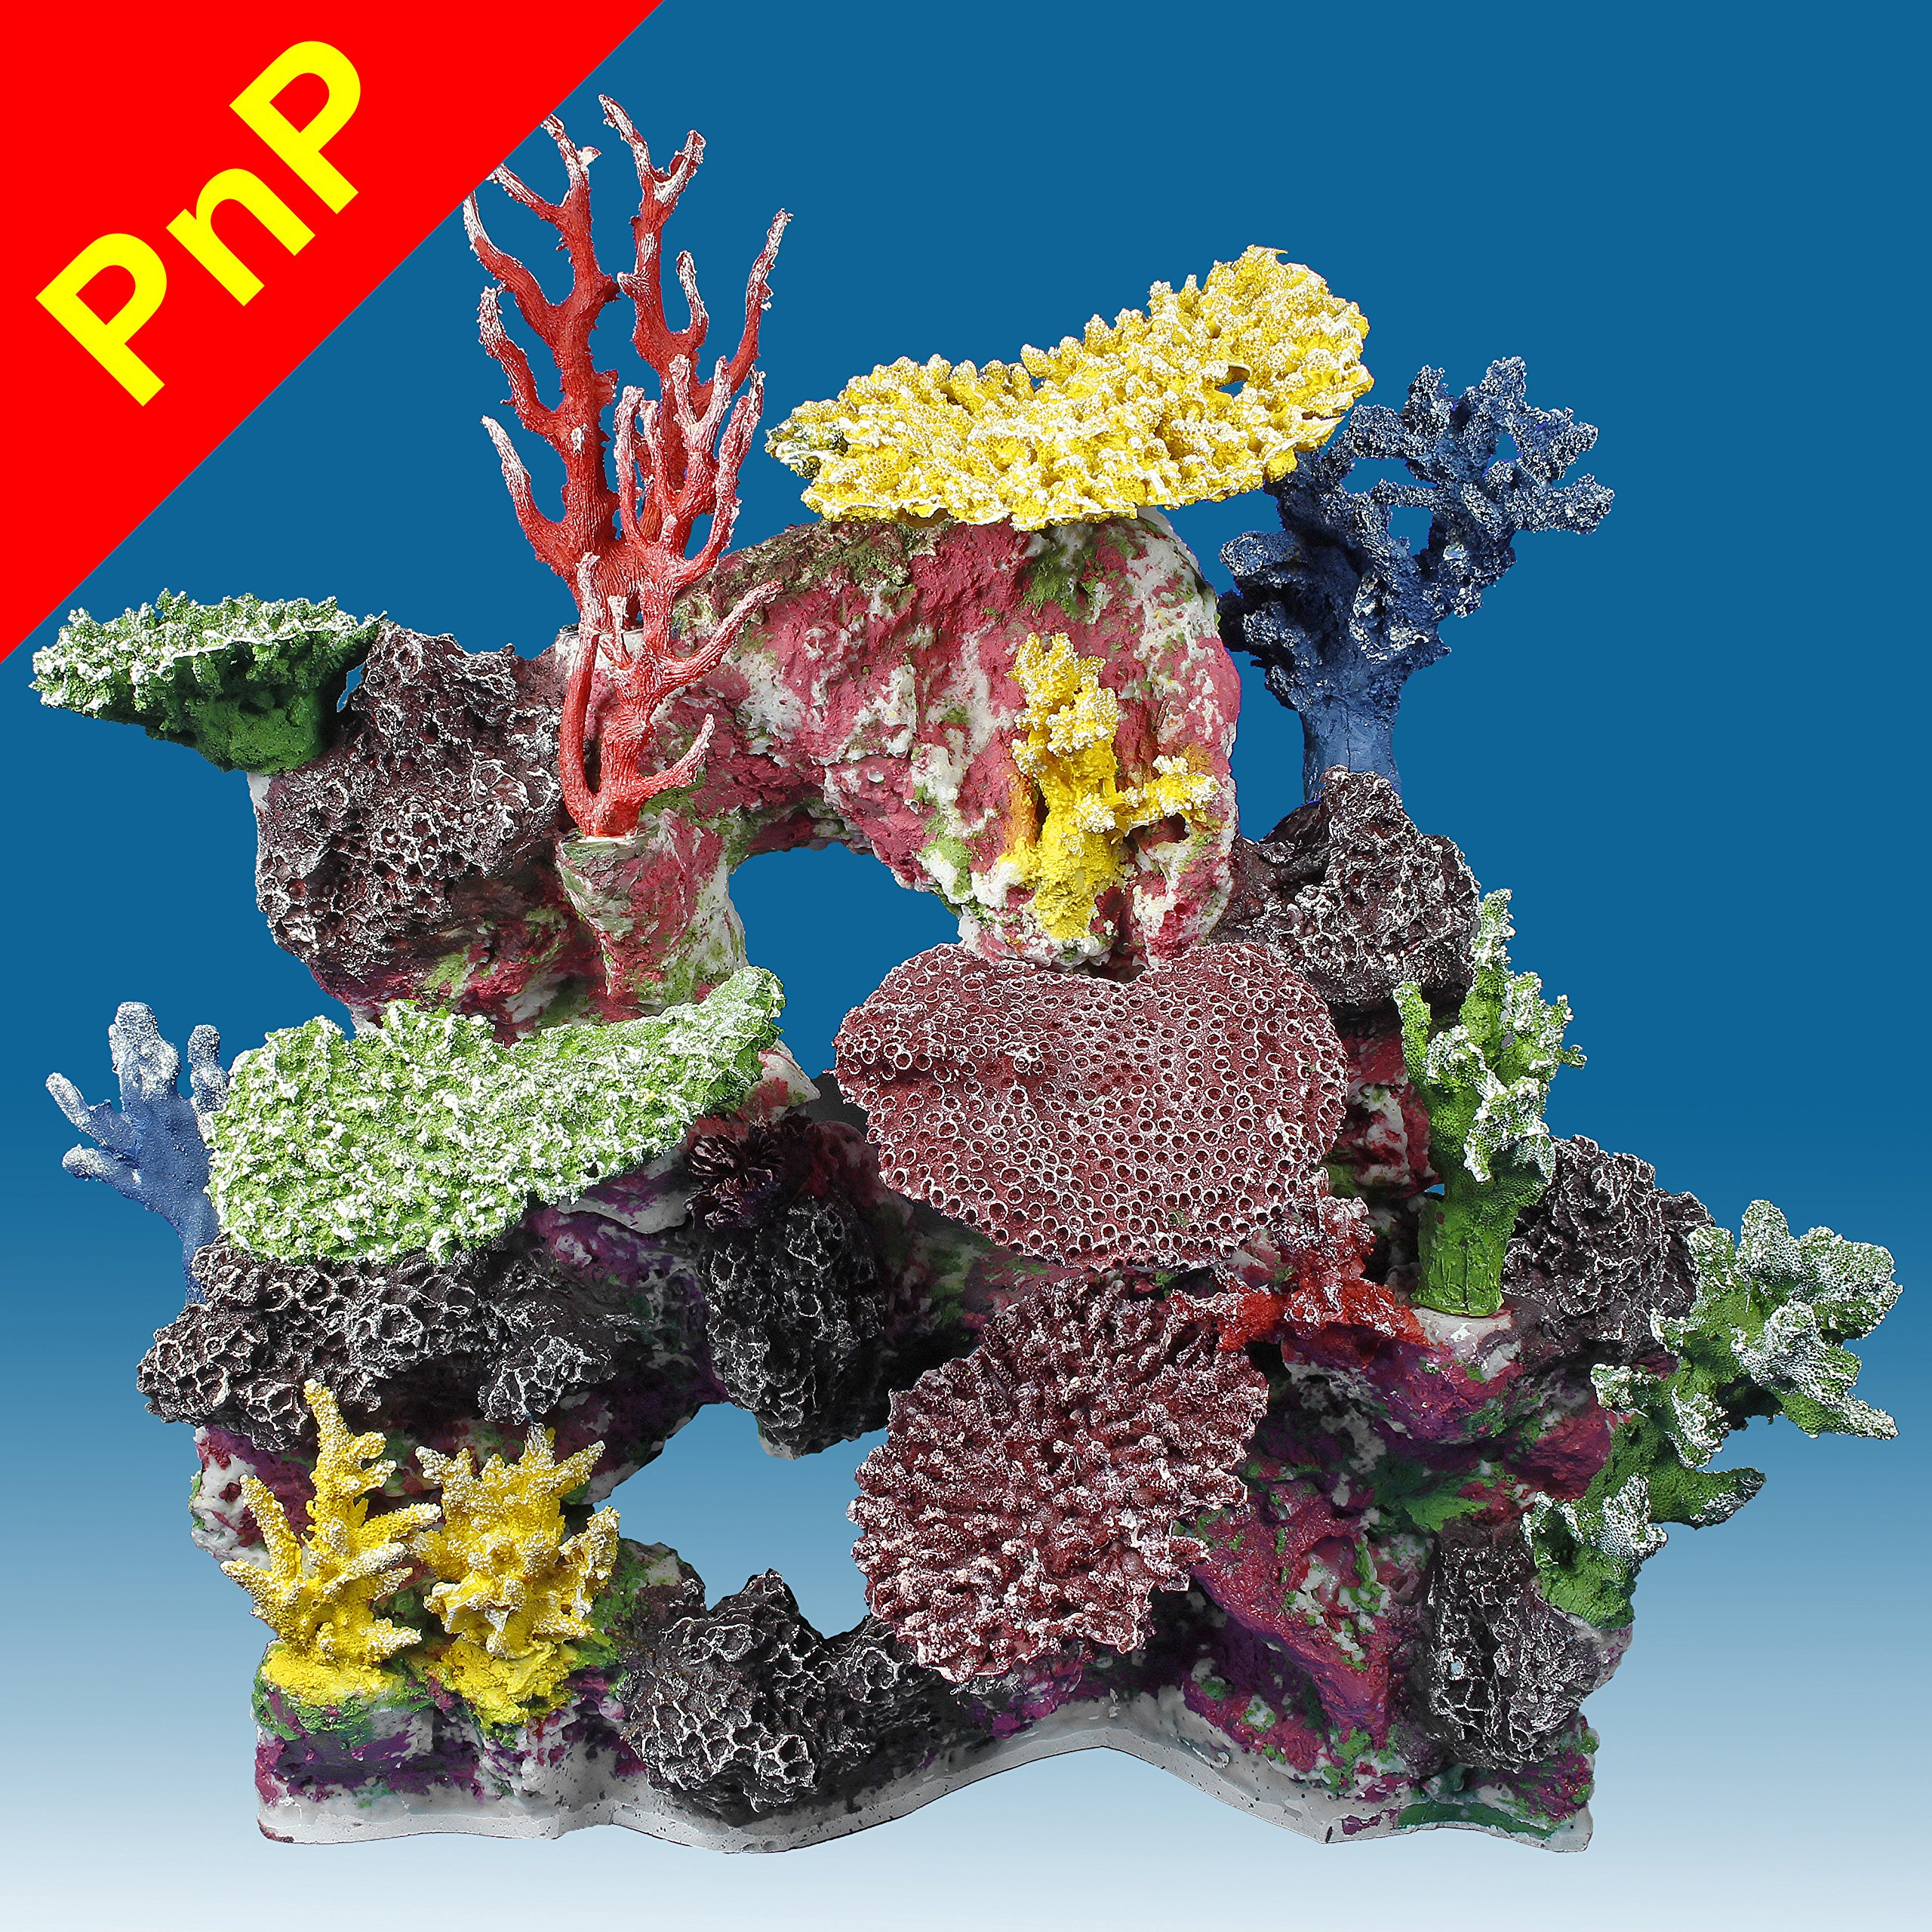 Instant Reef DM043PNP Large Artificial Coral Inserts Decor, Fake Coral Reef Decorations for Colorful Freshwater Fish Aquariums, Marine and Saltwater Fish Tanks by Instant Reef